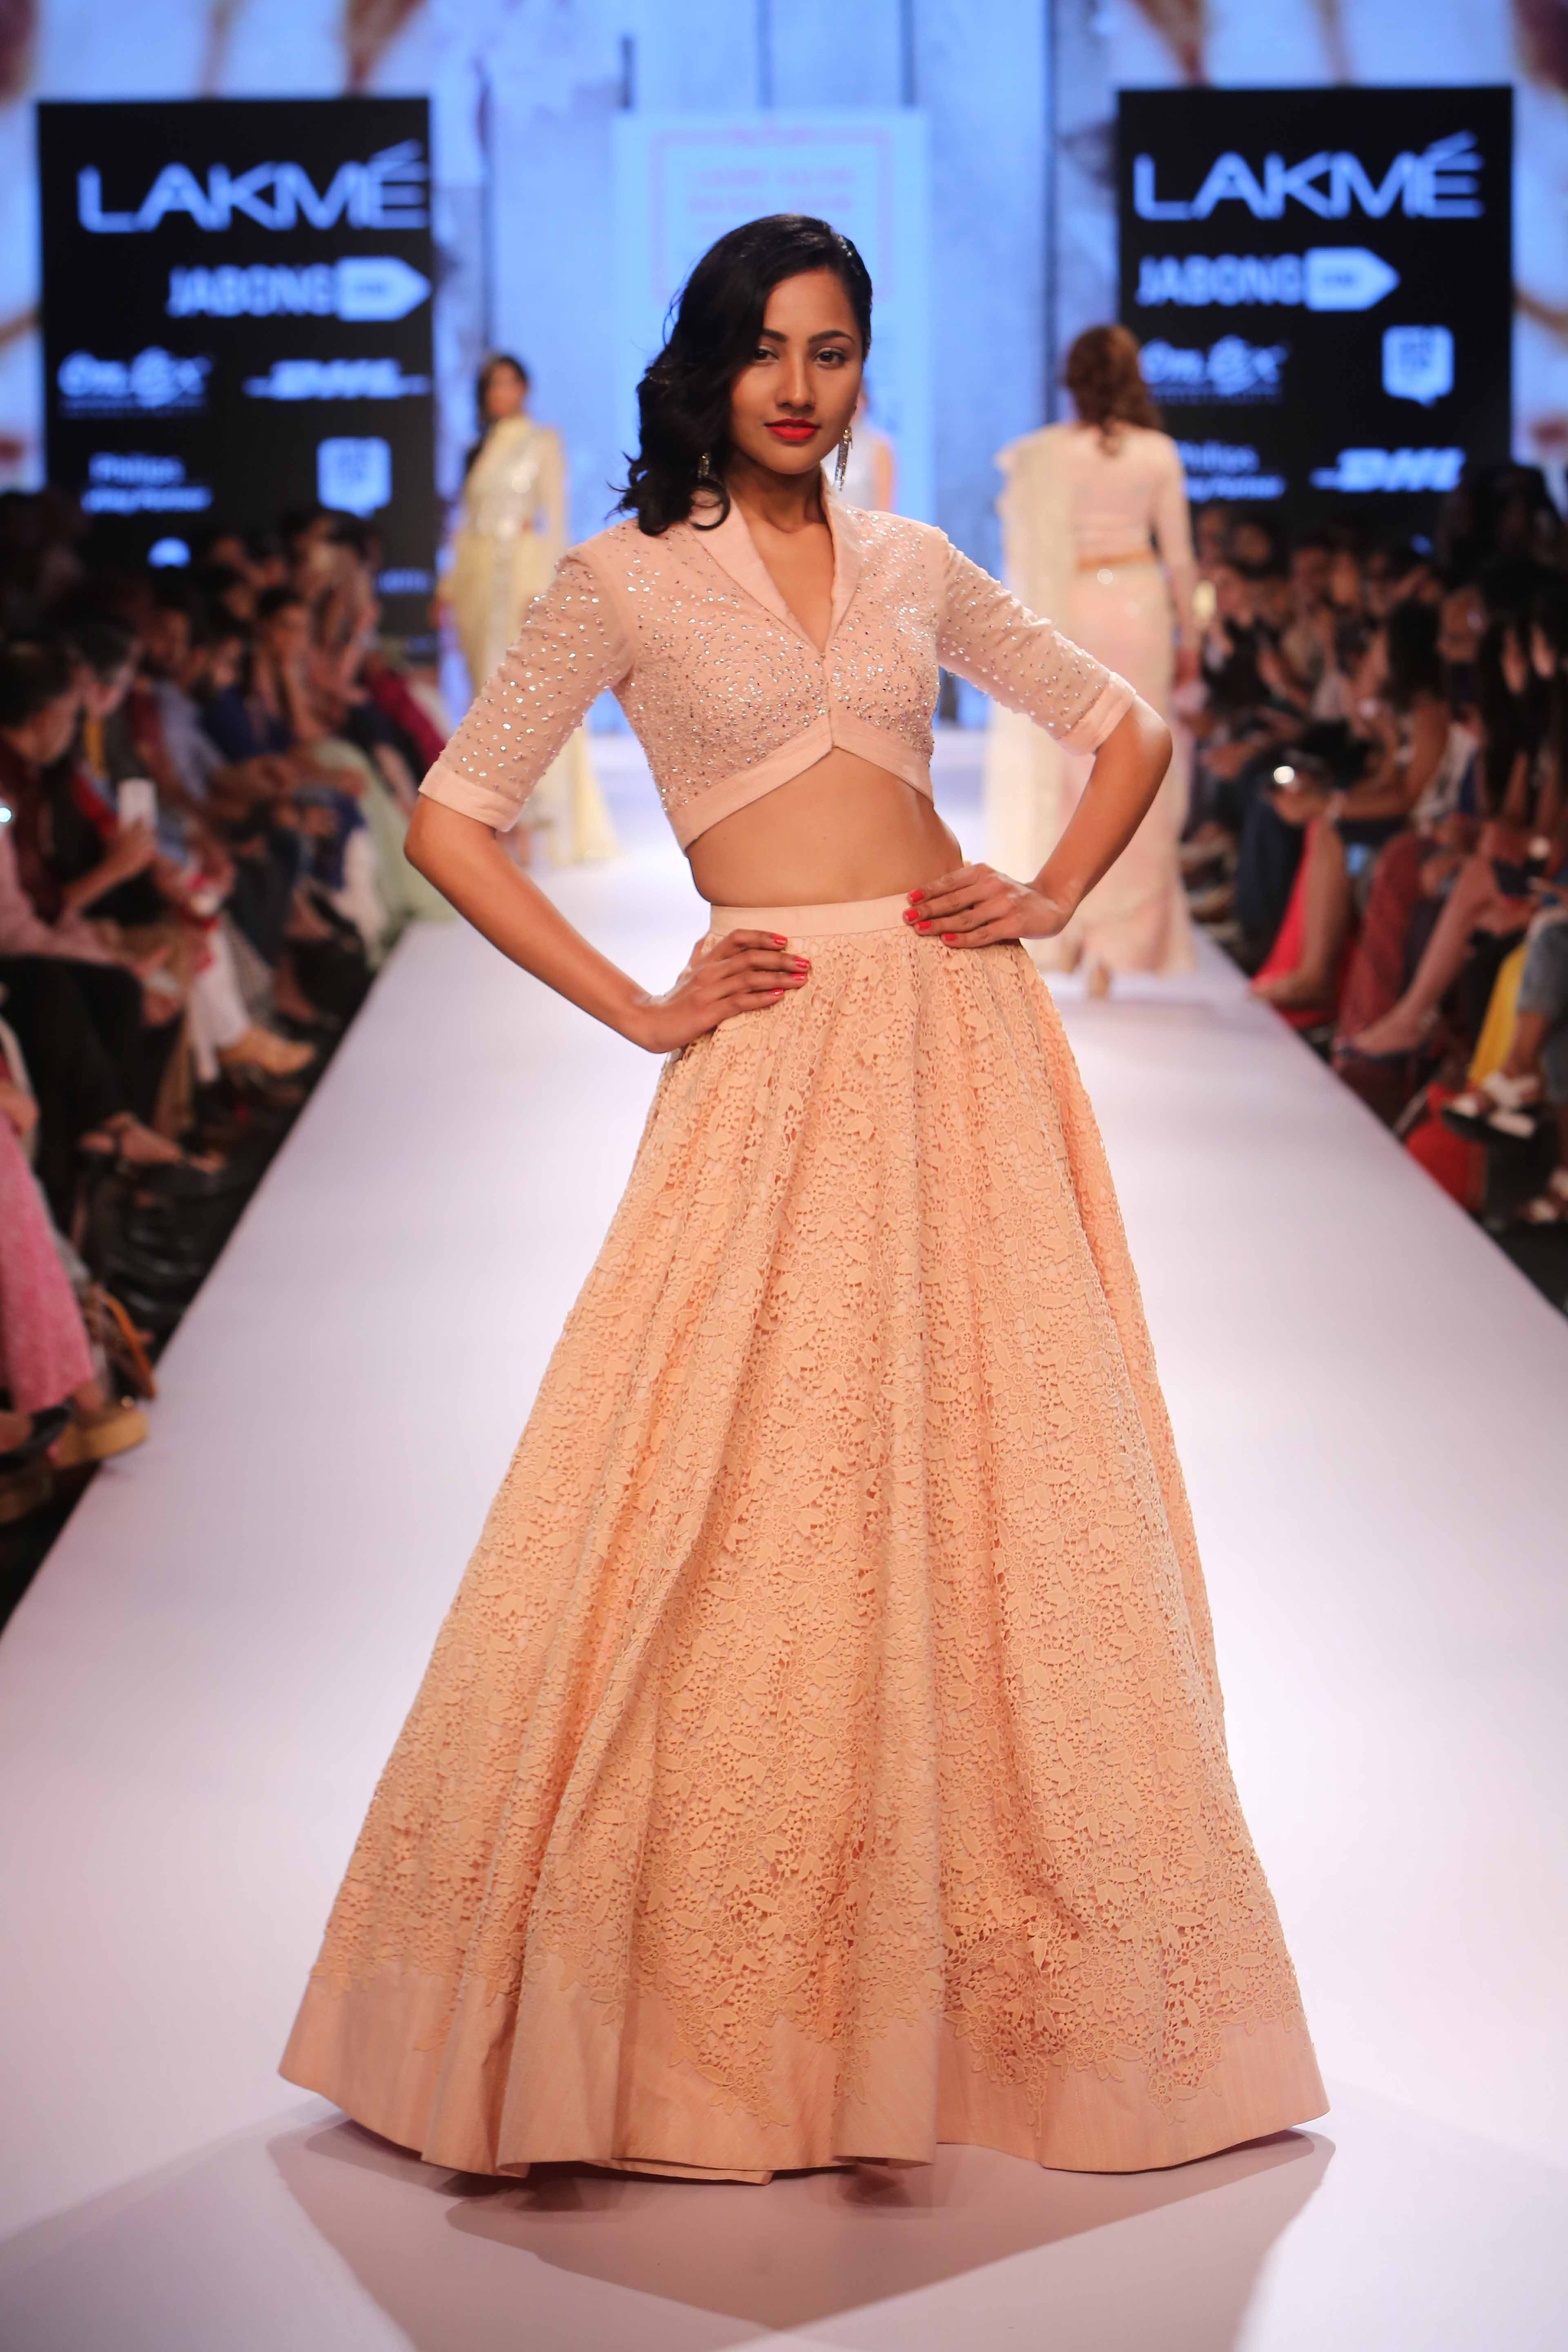 Lakme Fashion Week Sarees